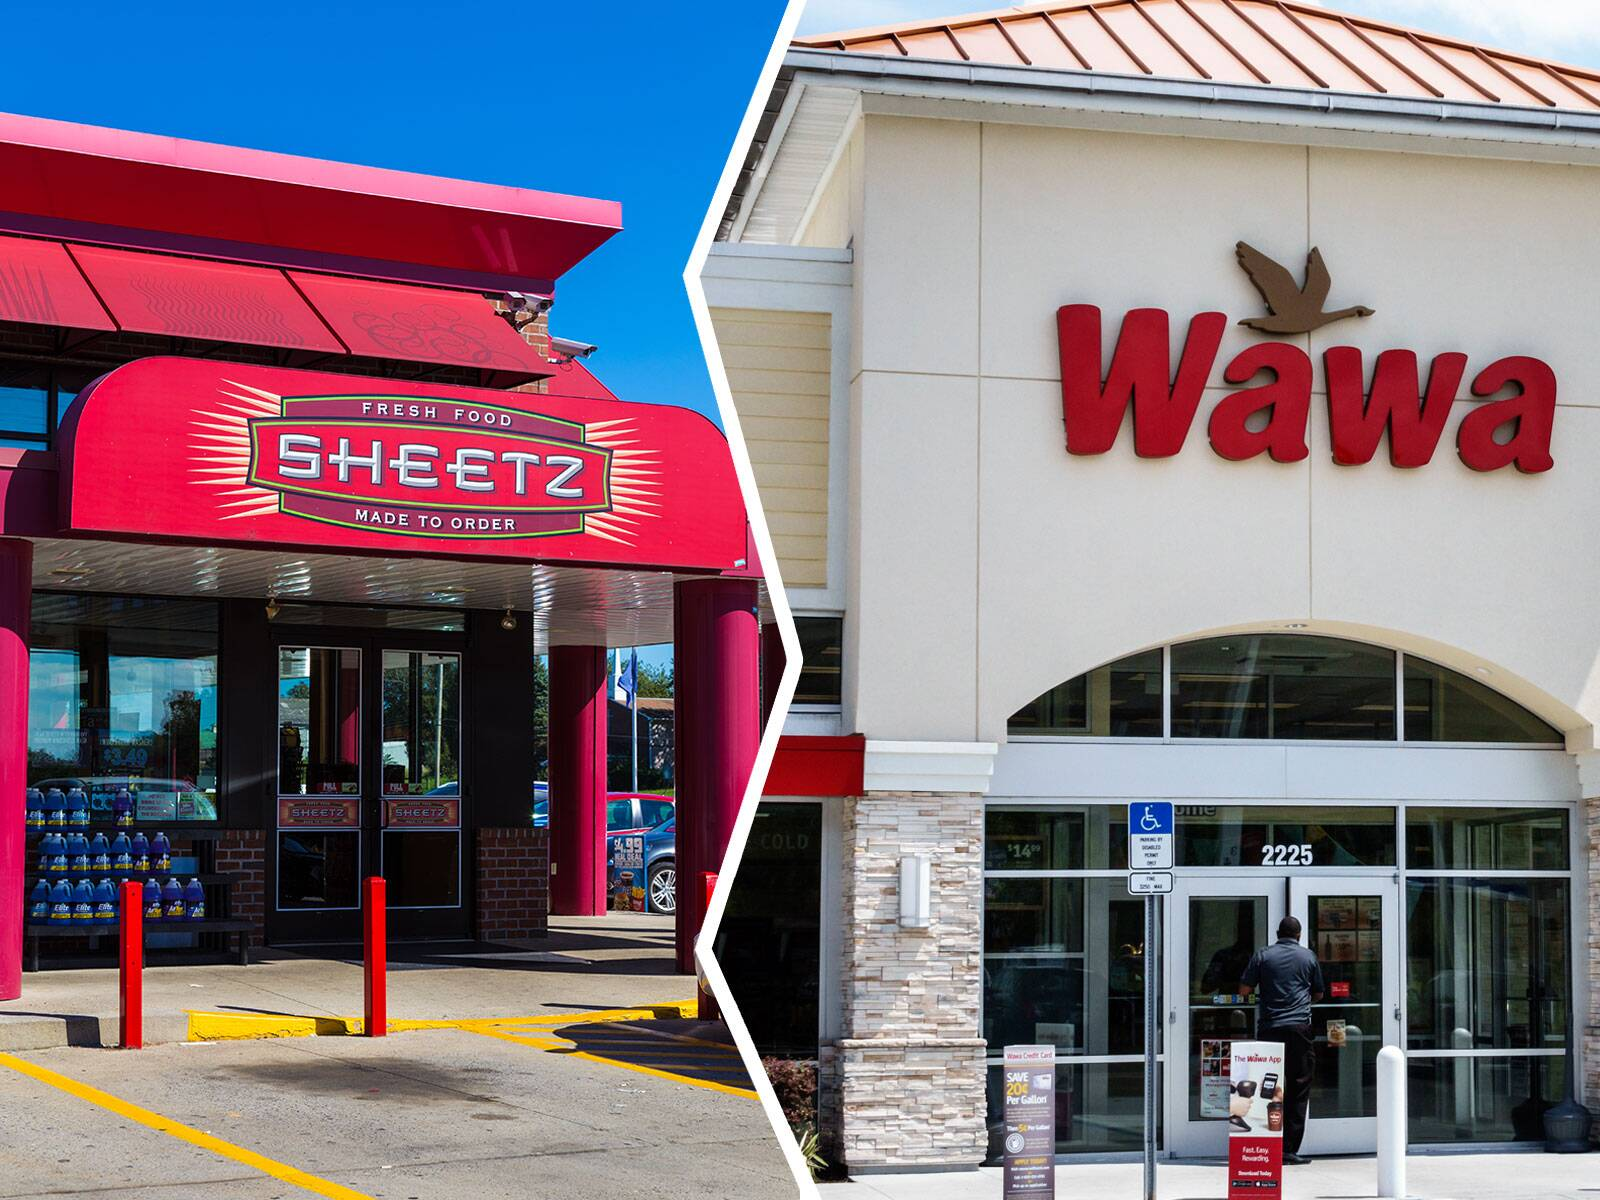 Food And Wine - Sheetz Vs. Wawa Documentary